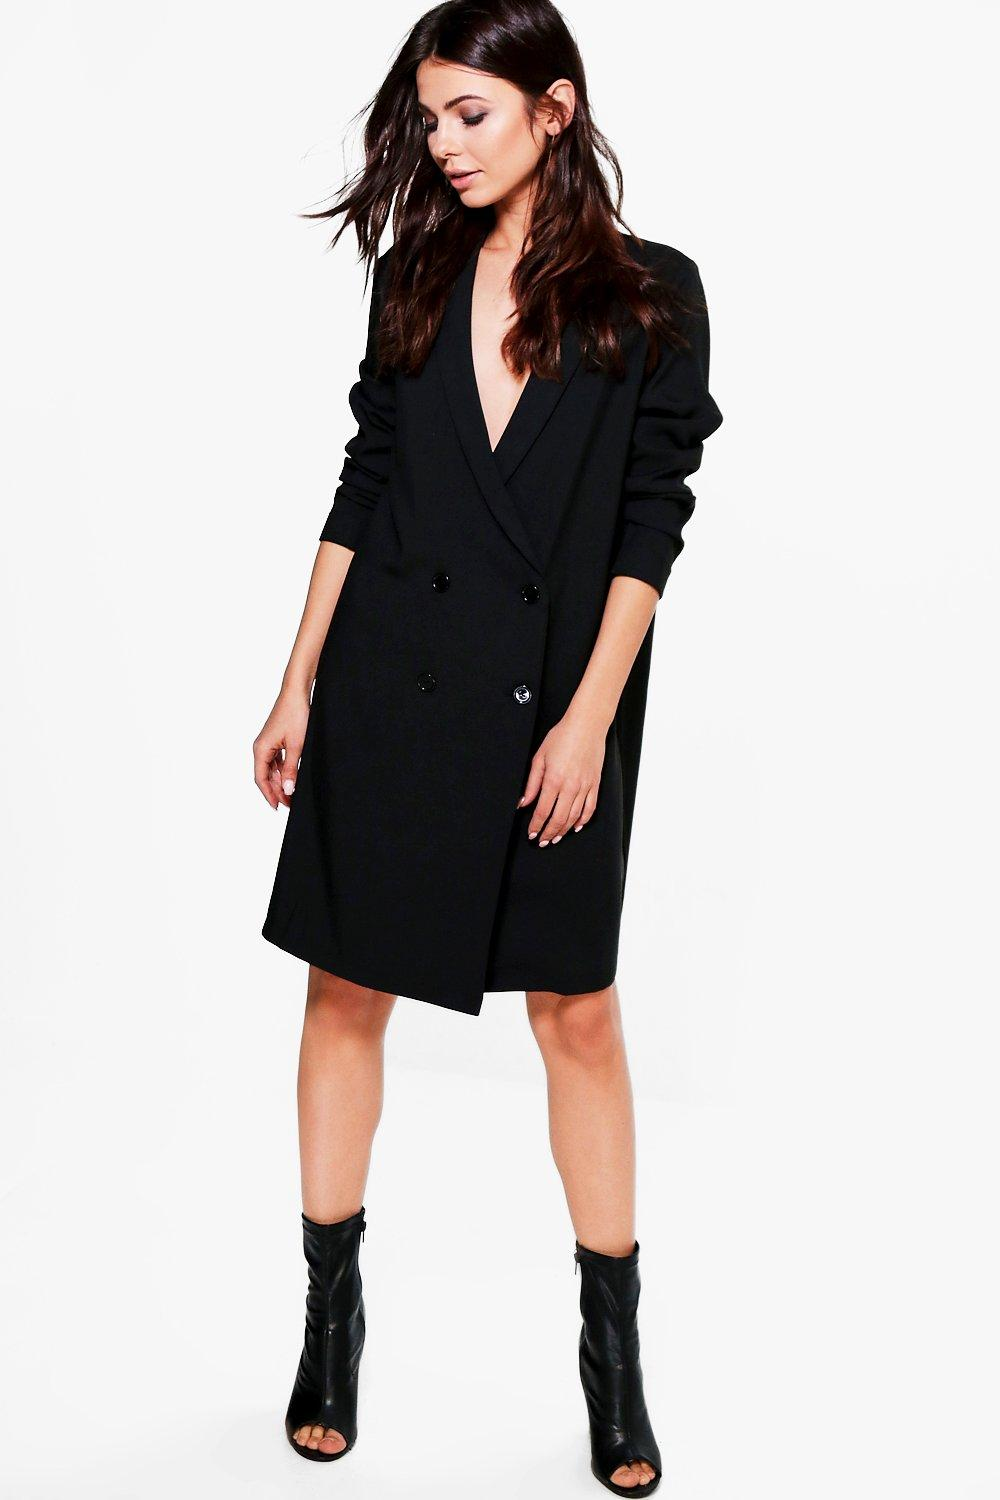 Jasmine Boutique Structured Blazer Dress